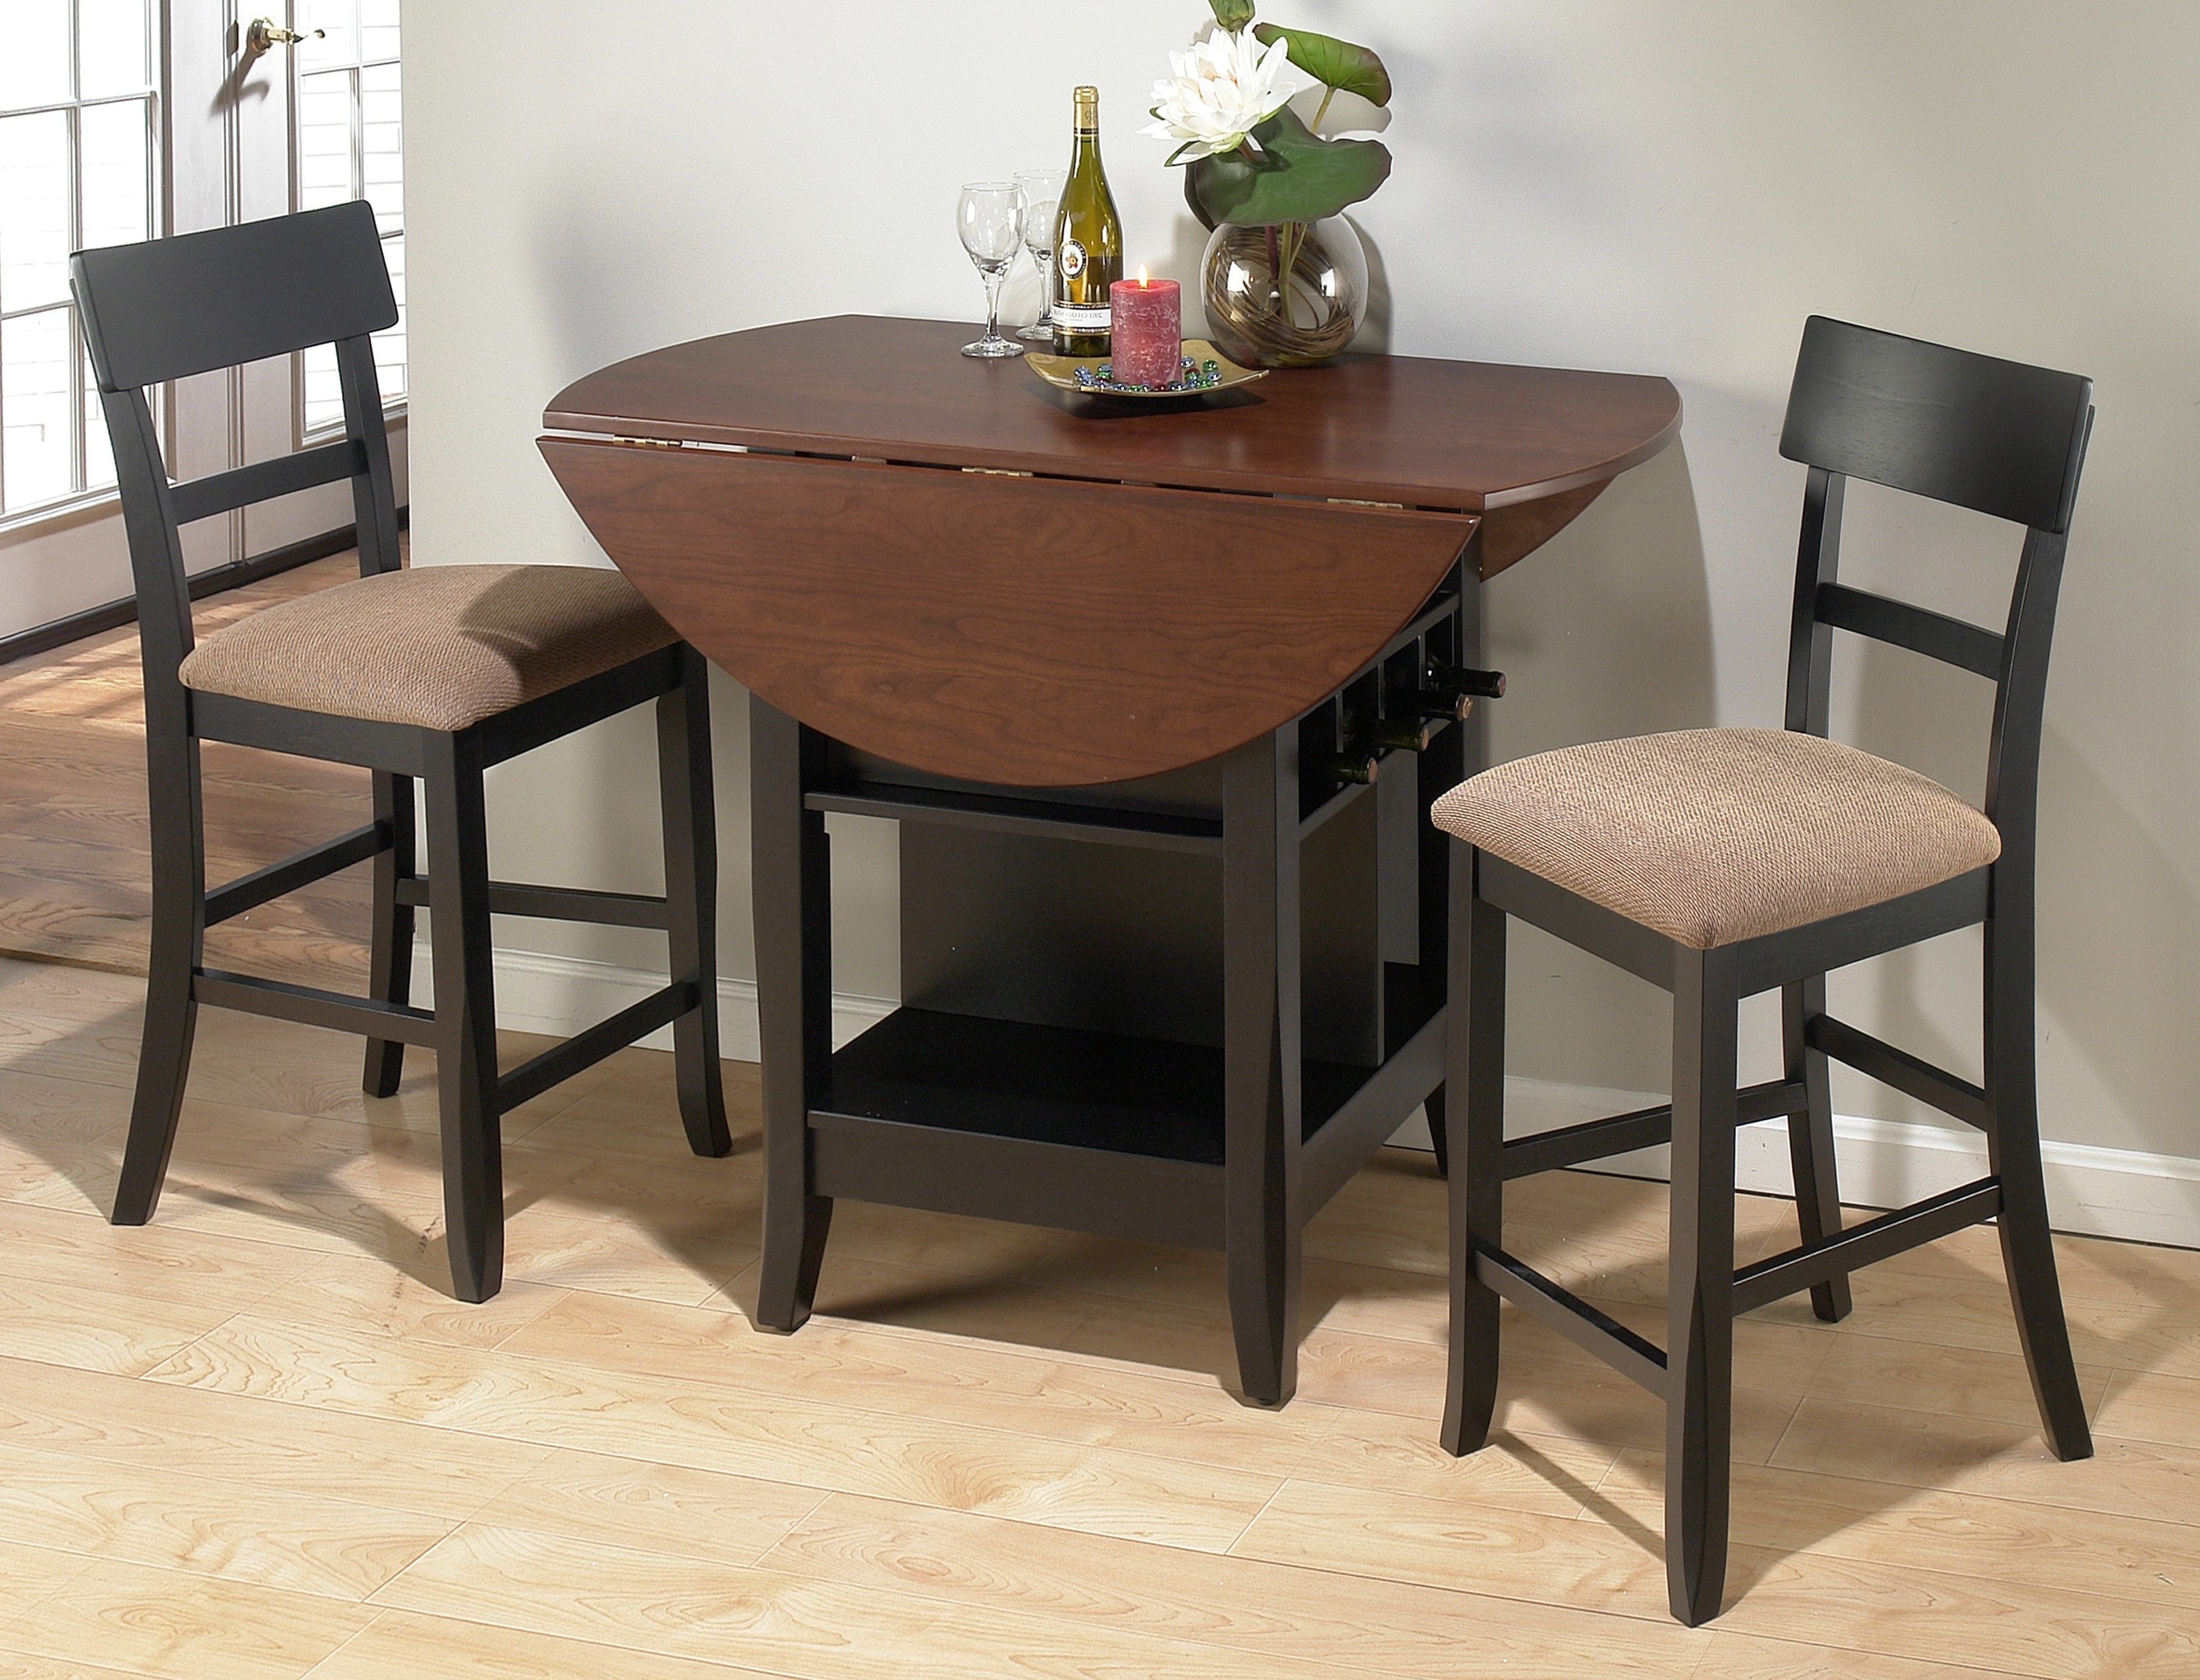 Small Dining Sets Regarding Newest Small Round Dining Table For 4 Fresh Square To Round Dining Table (View 3 of 25)